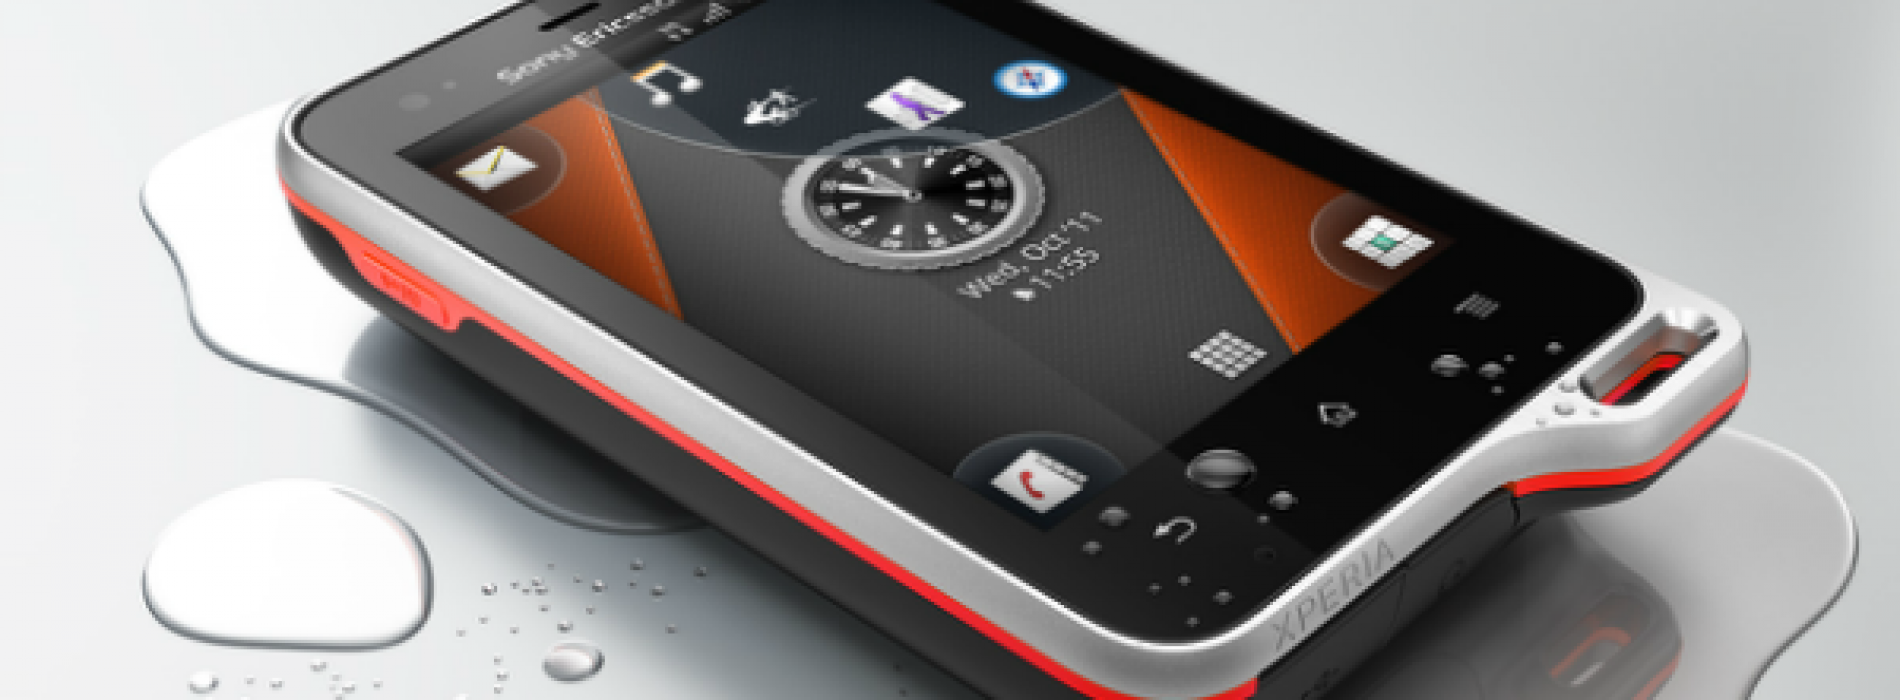 Unlocked Sony Ericsson Xperia active now available in U.S.